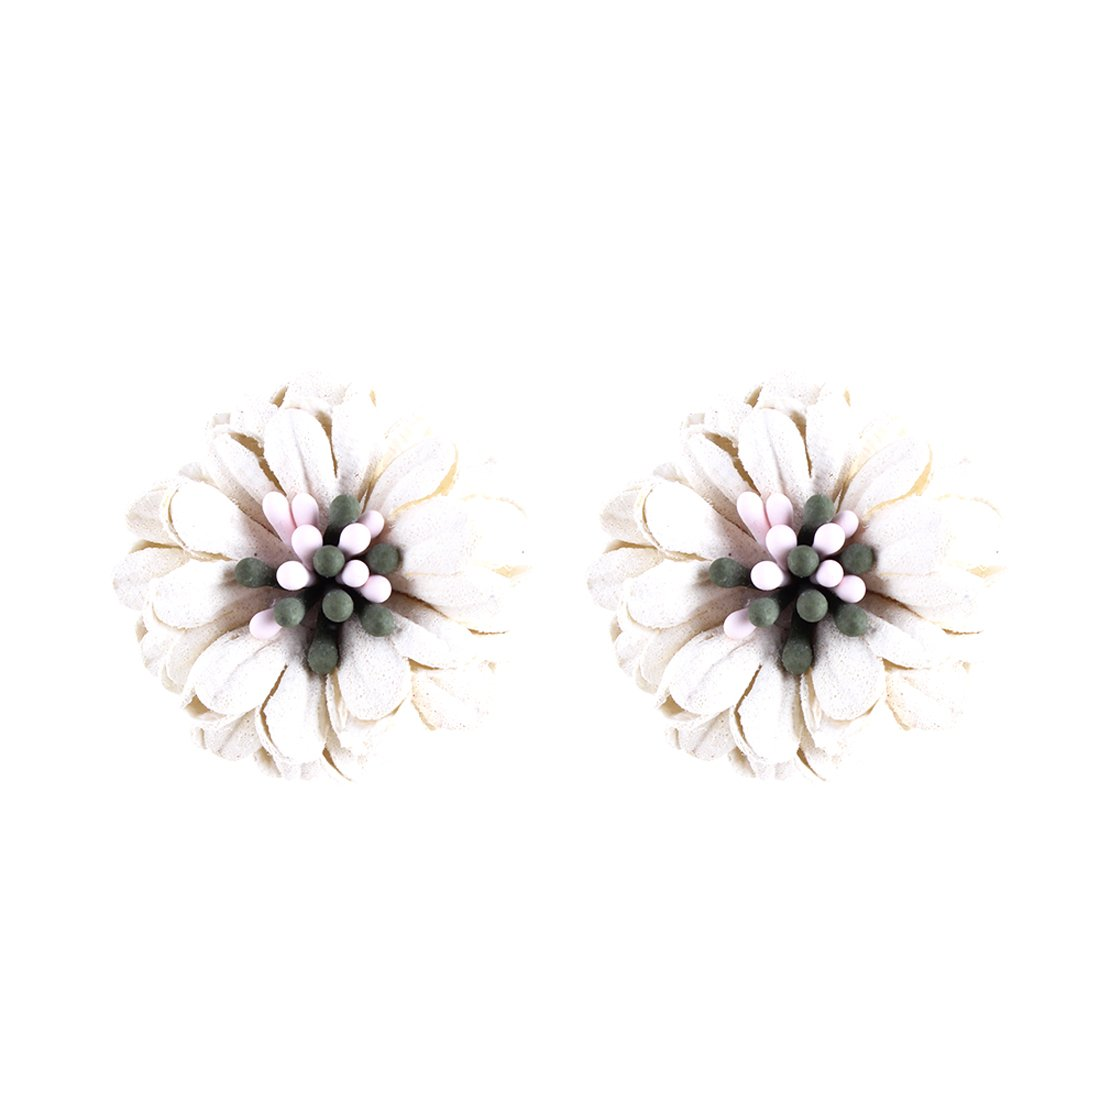 Szolno New Daisy Earrings Simple Handmade Fashion Personality Flowers